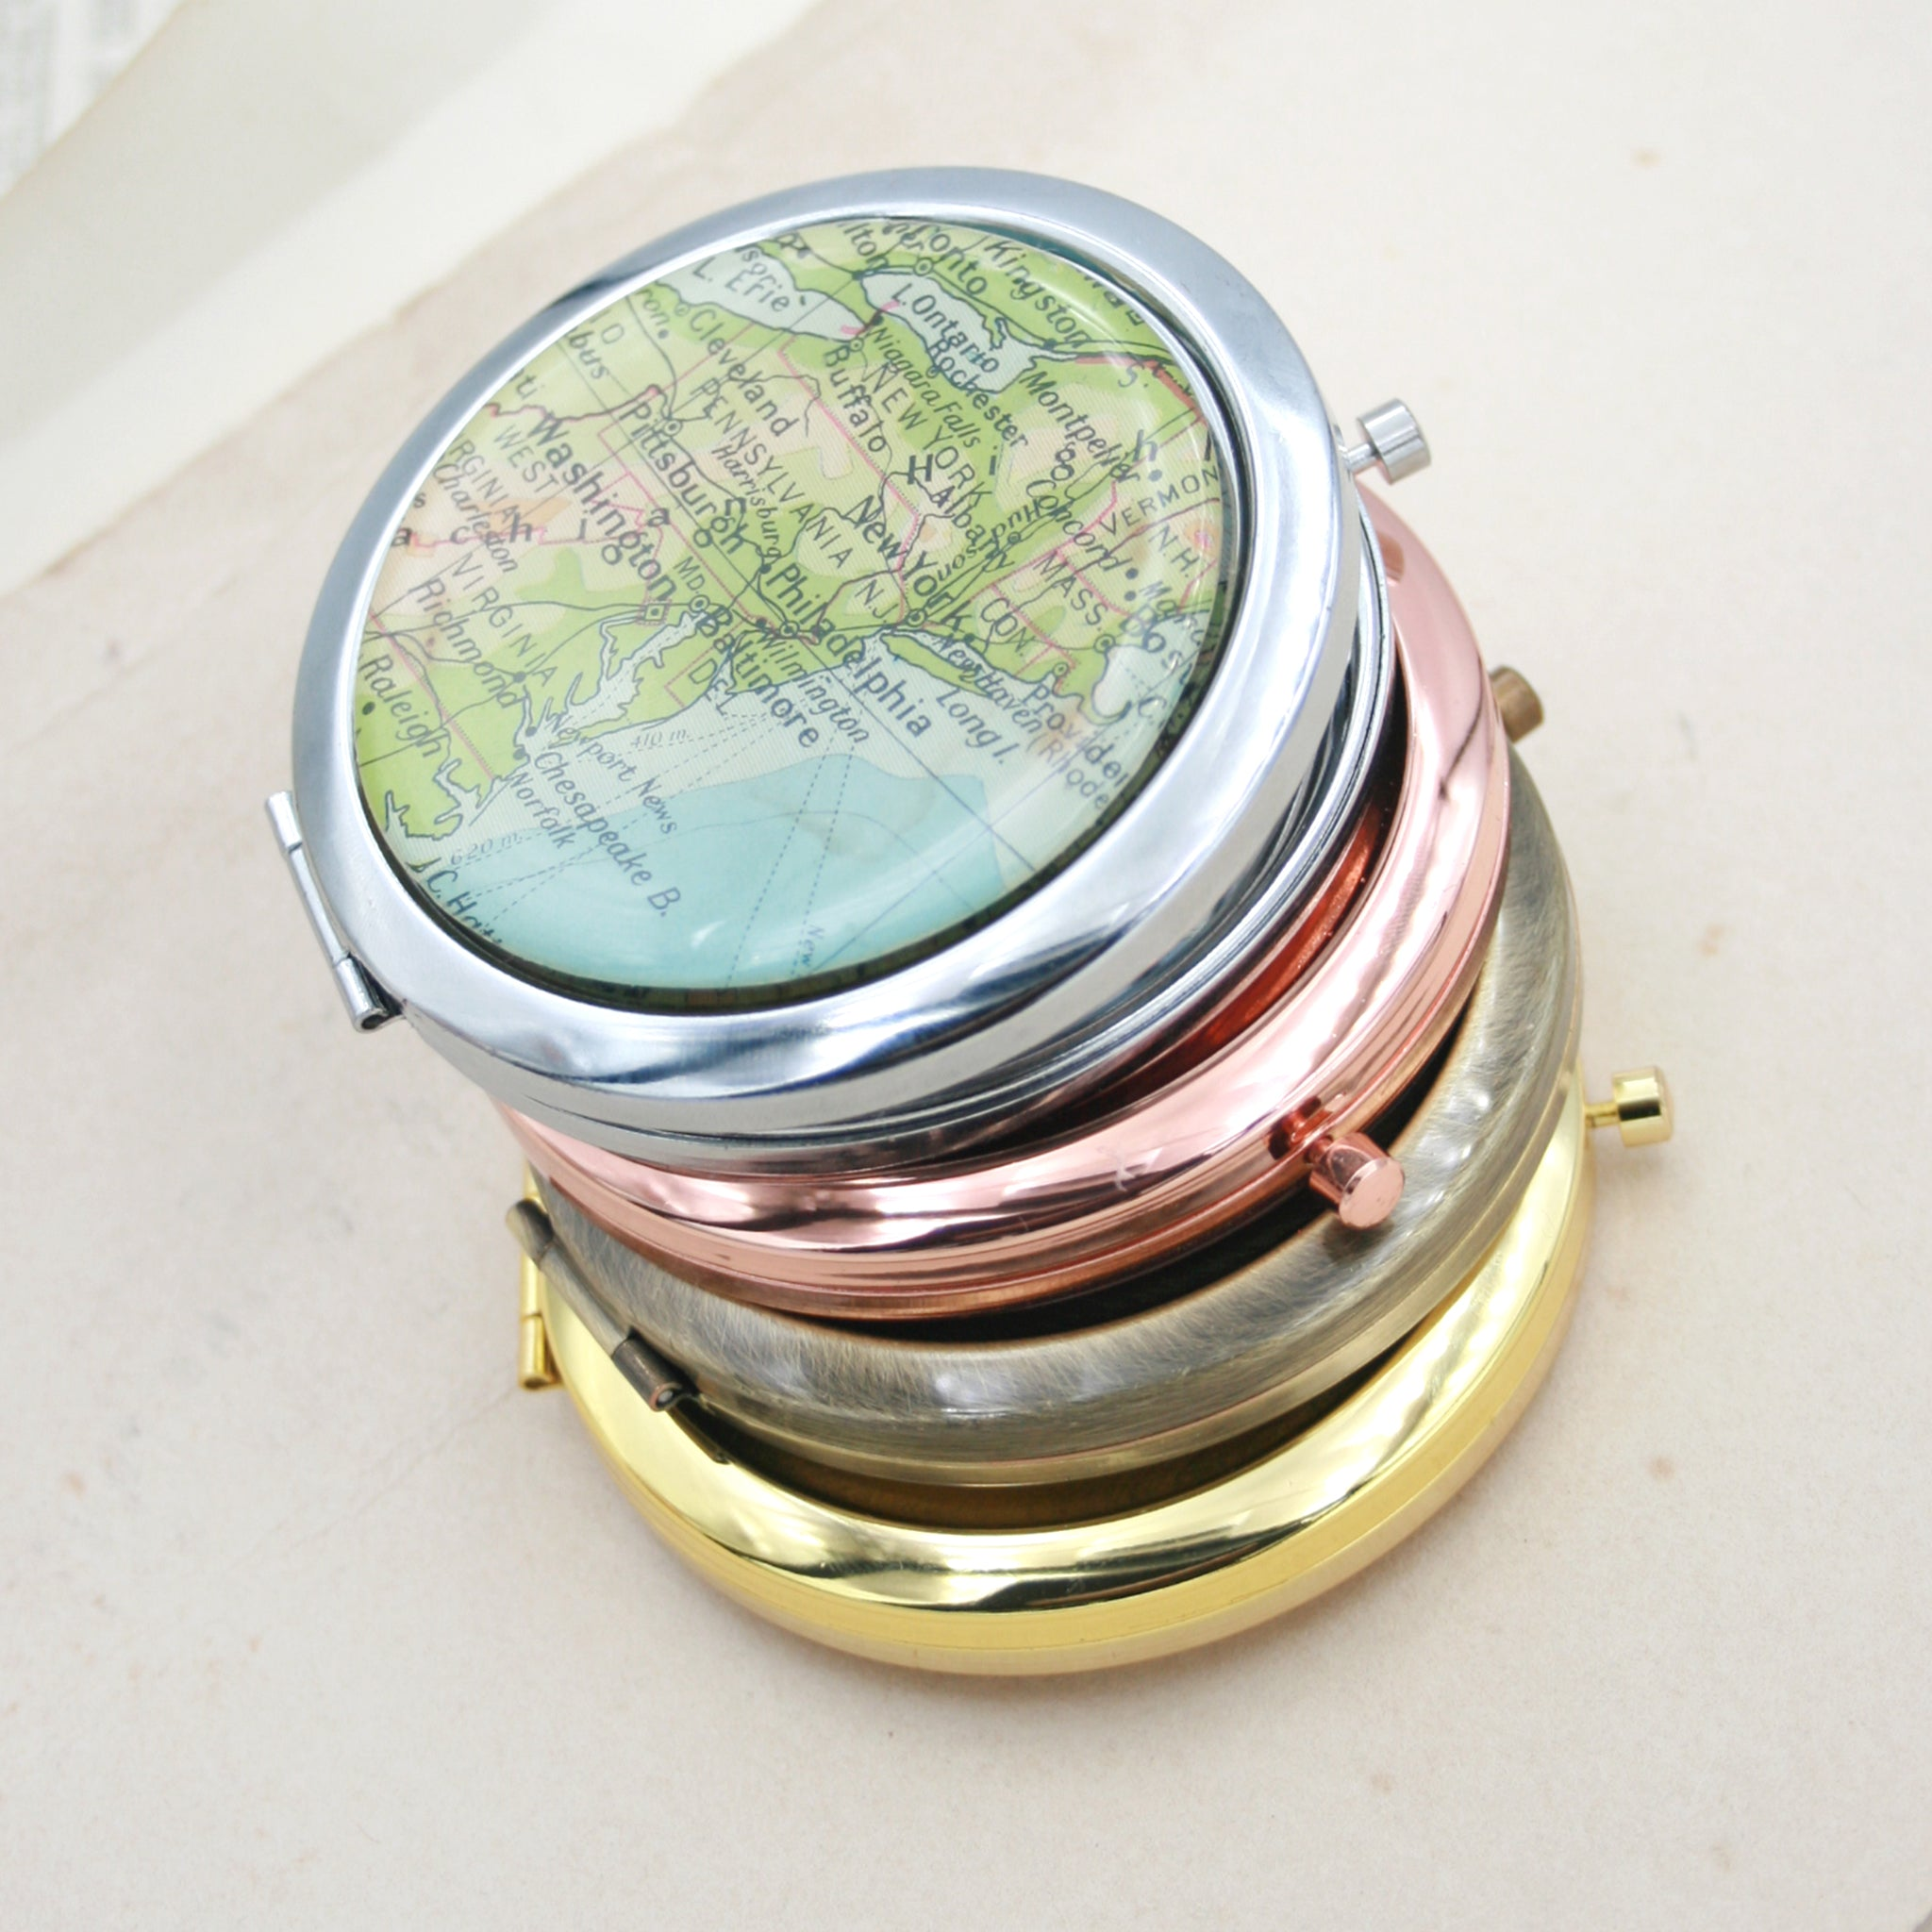 Four compact mirrors one on the another, gold, bronze,rose gold and silver featuring map of New York